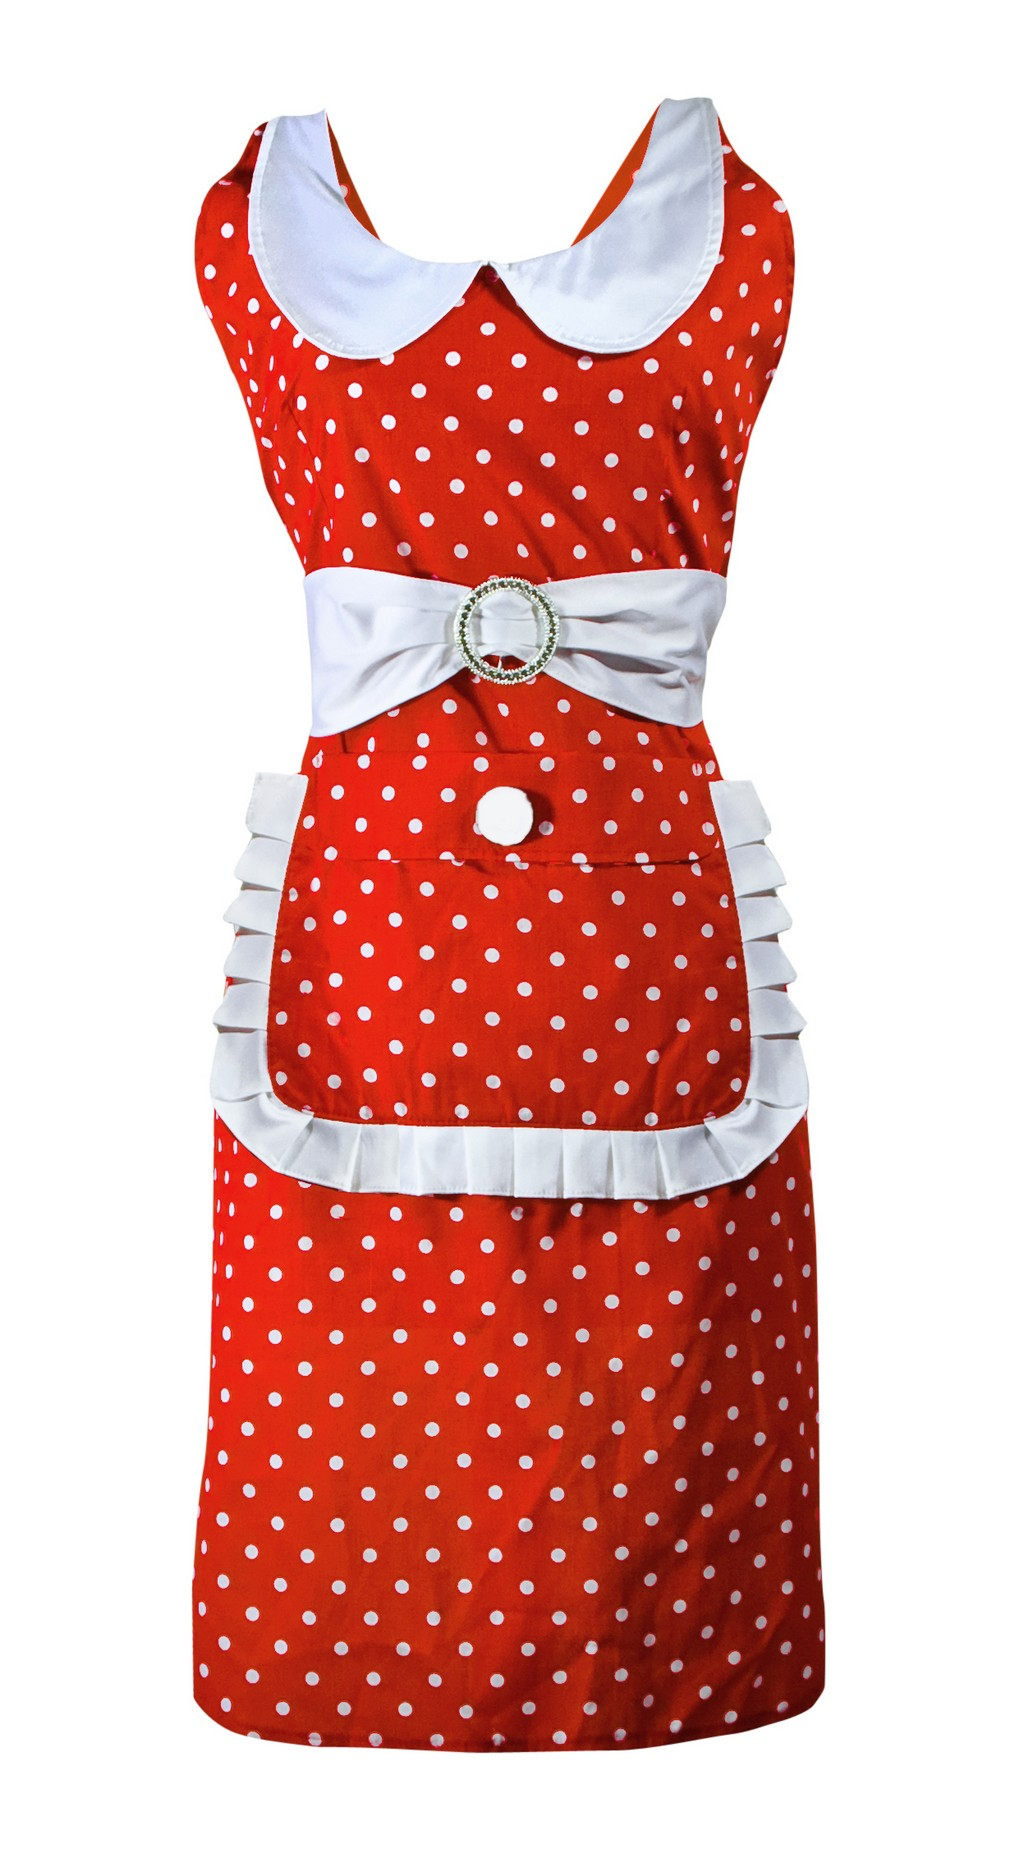 aprons vintage, free apron patterns, carfloat aprons, kitchen aprons